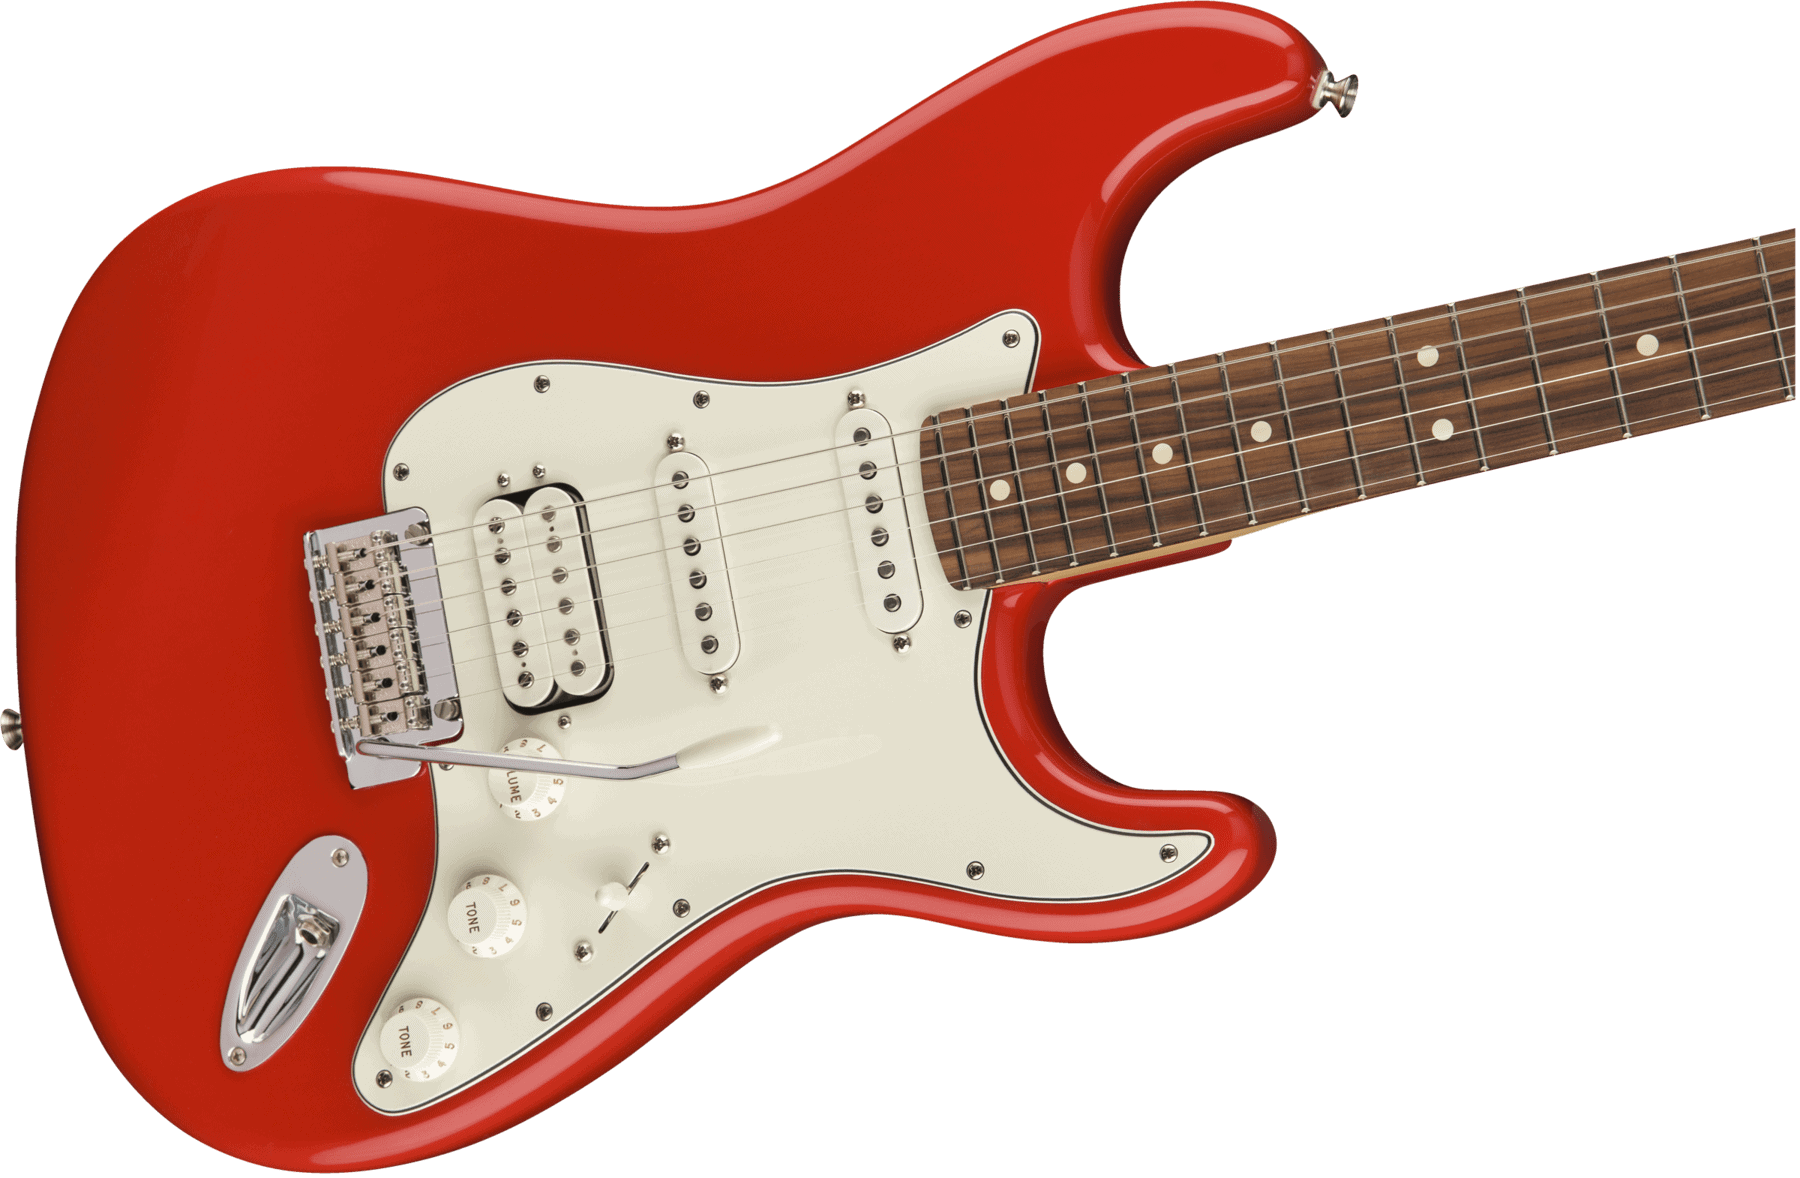 fender player stratocaster hss pau ferro sonic red black dot music. Black Bedroom Furniture Sets. Home Design Ideas